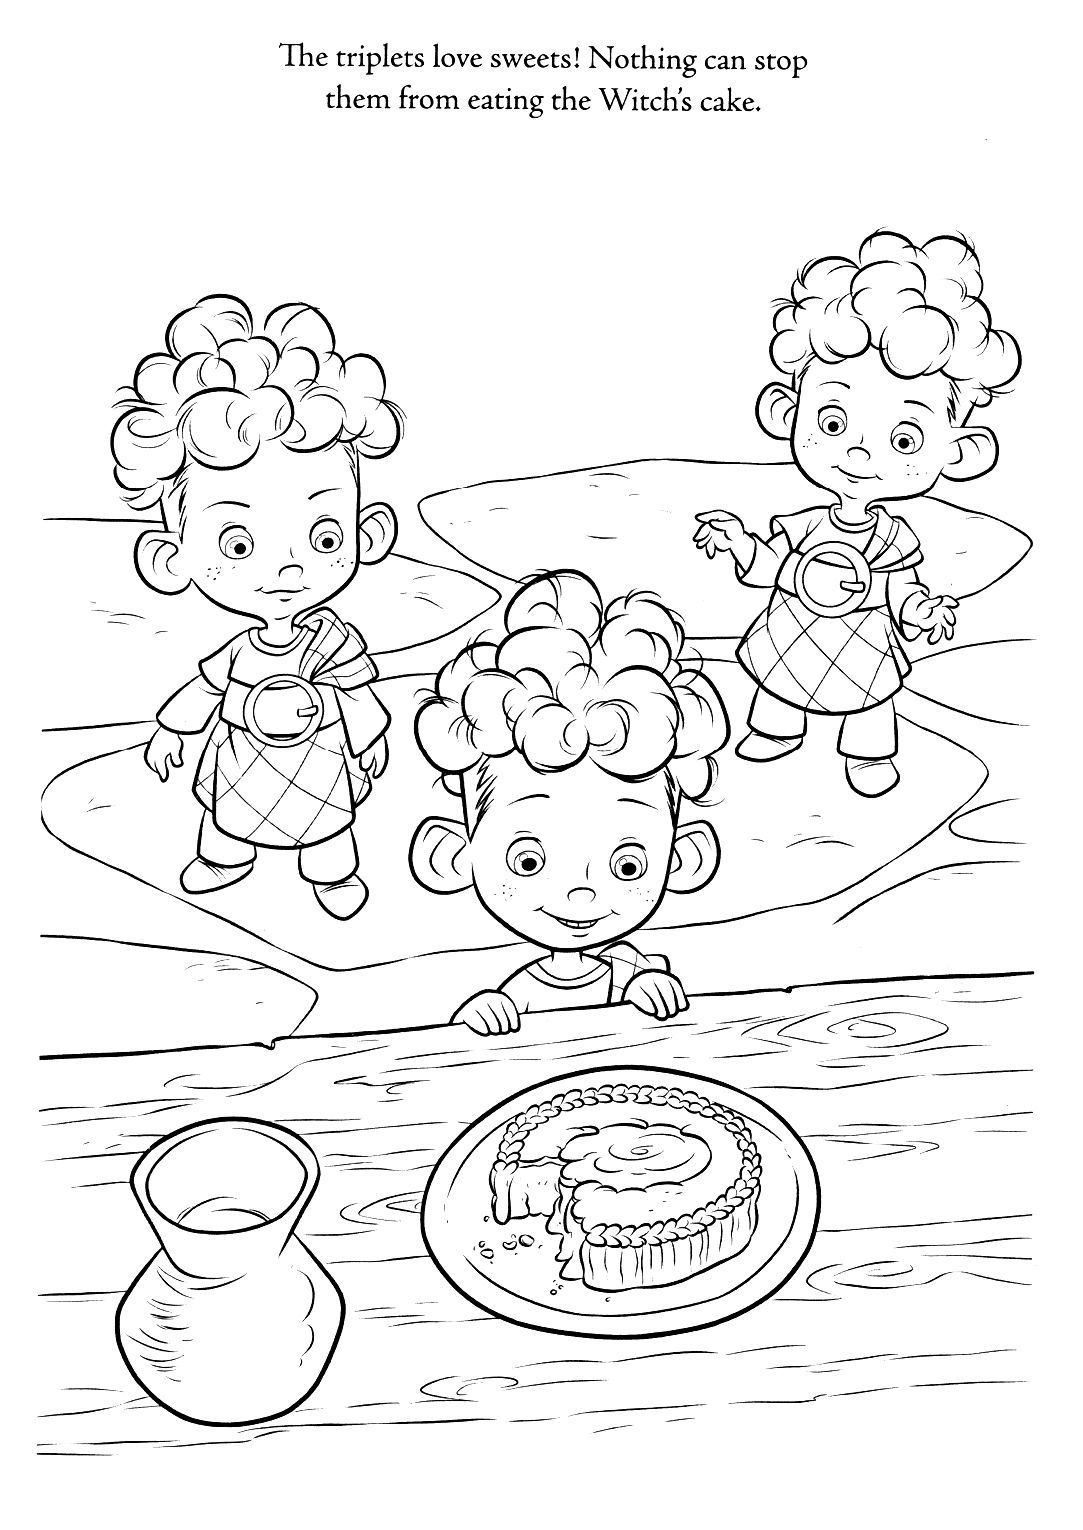 Disney Coloring Pages Photo Disney Coloring Pages Coloring Books Disney Princess Coloring Pages [ jpg ]